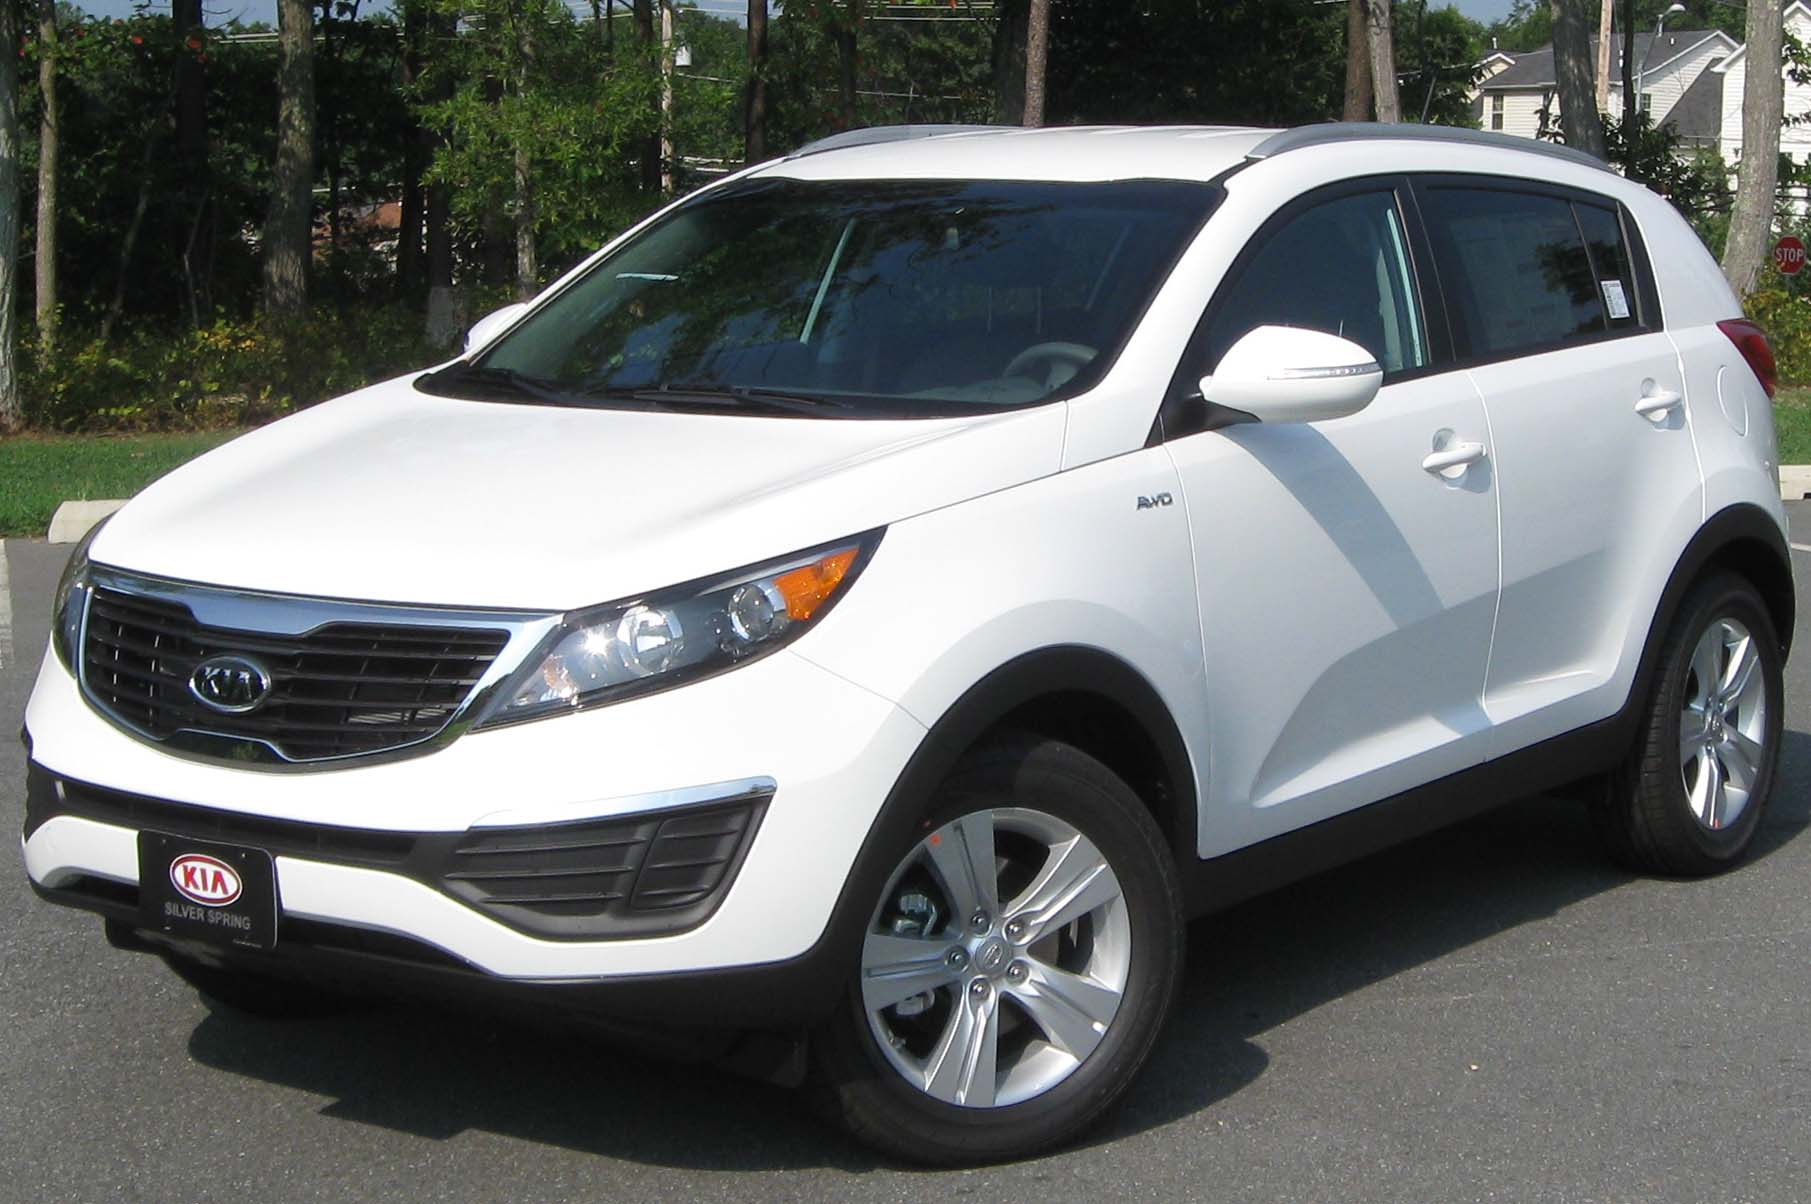 Description 2011 Kia Sportage LX -- 08-16-2010.jpg